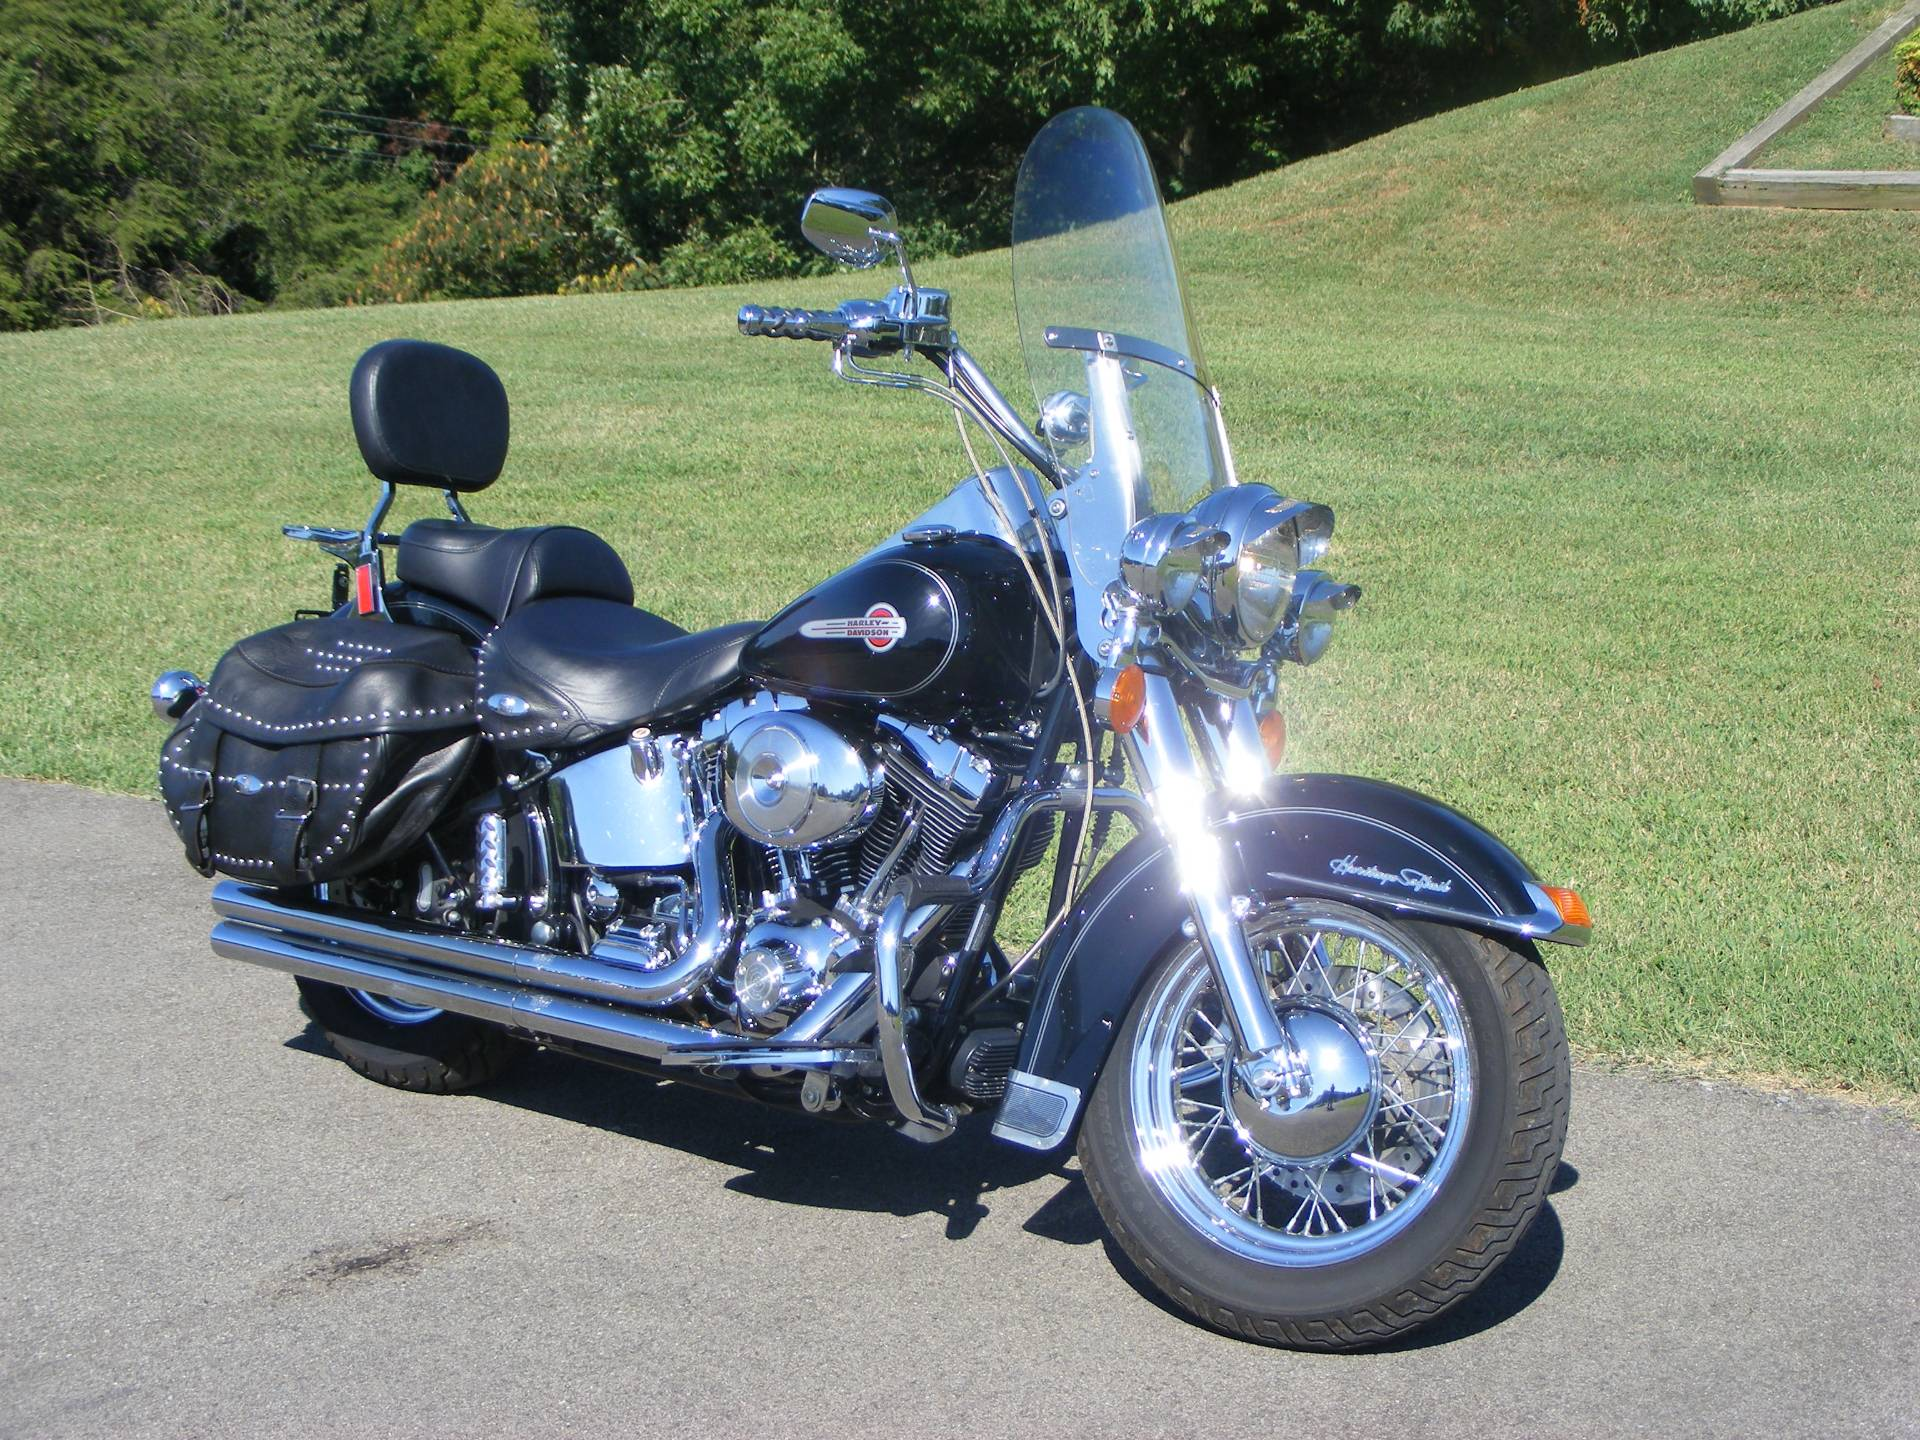 2004 Harley-Davidson Heritage Softail Classic in Morristown, Tennessee - Photo 2